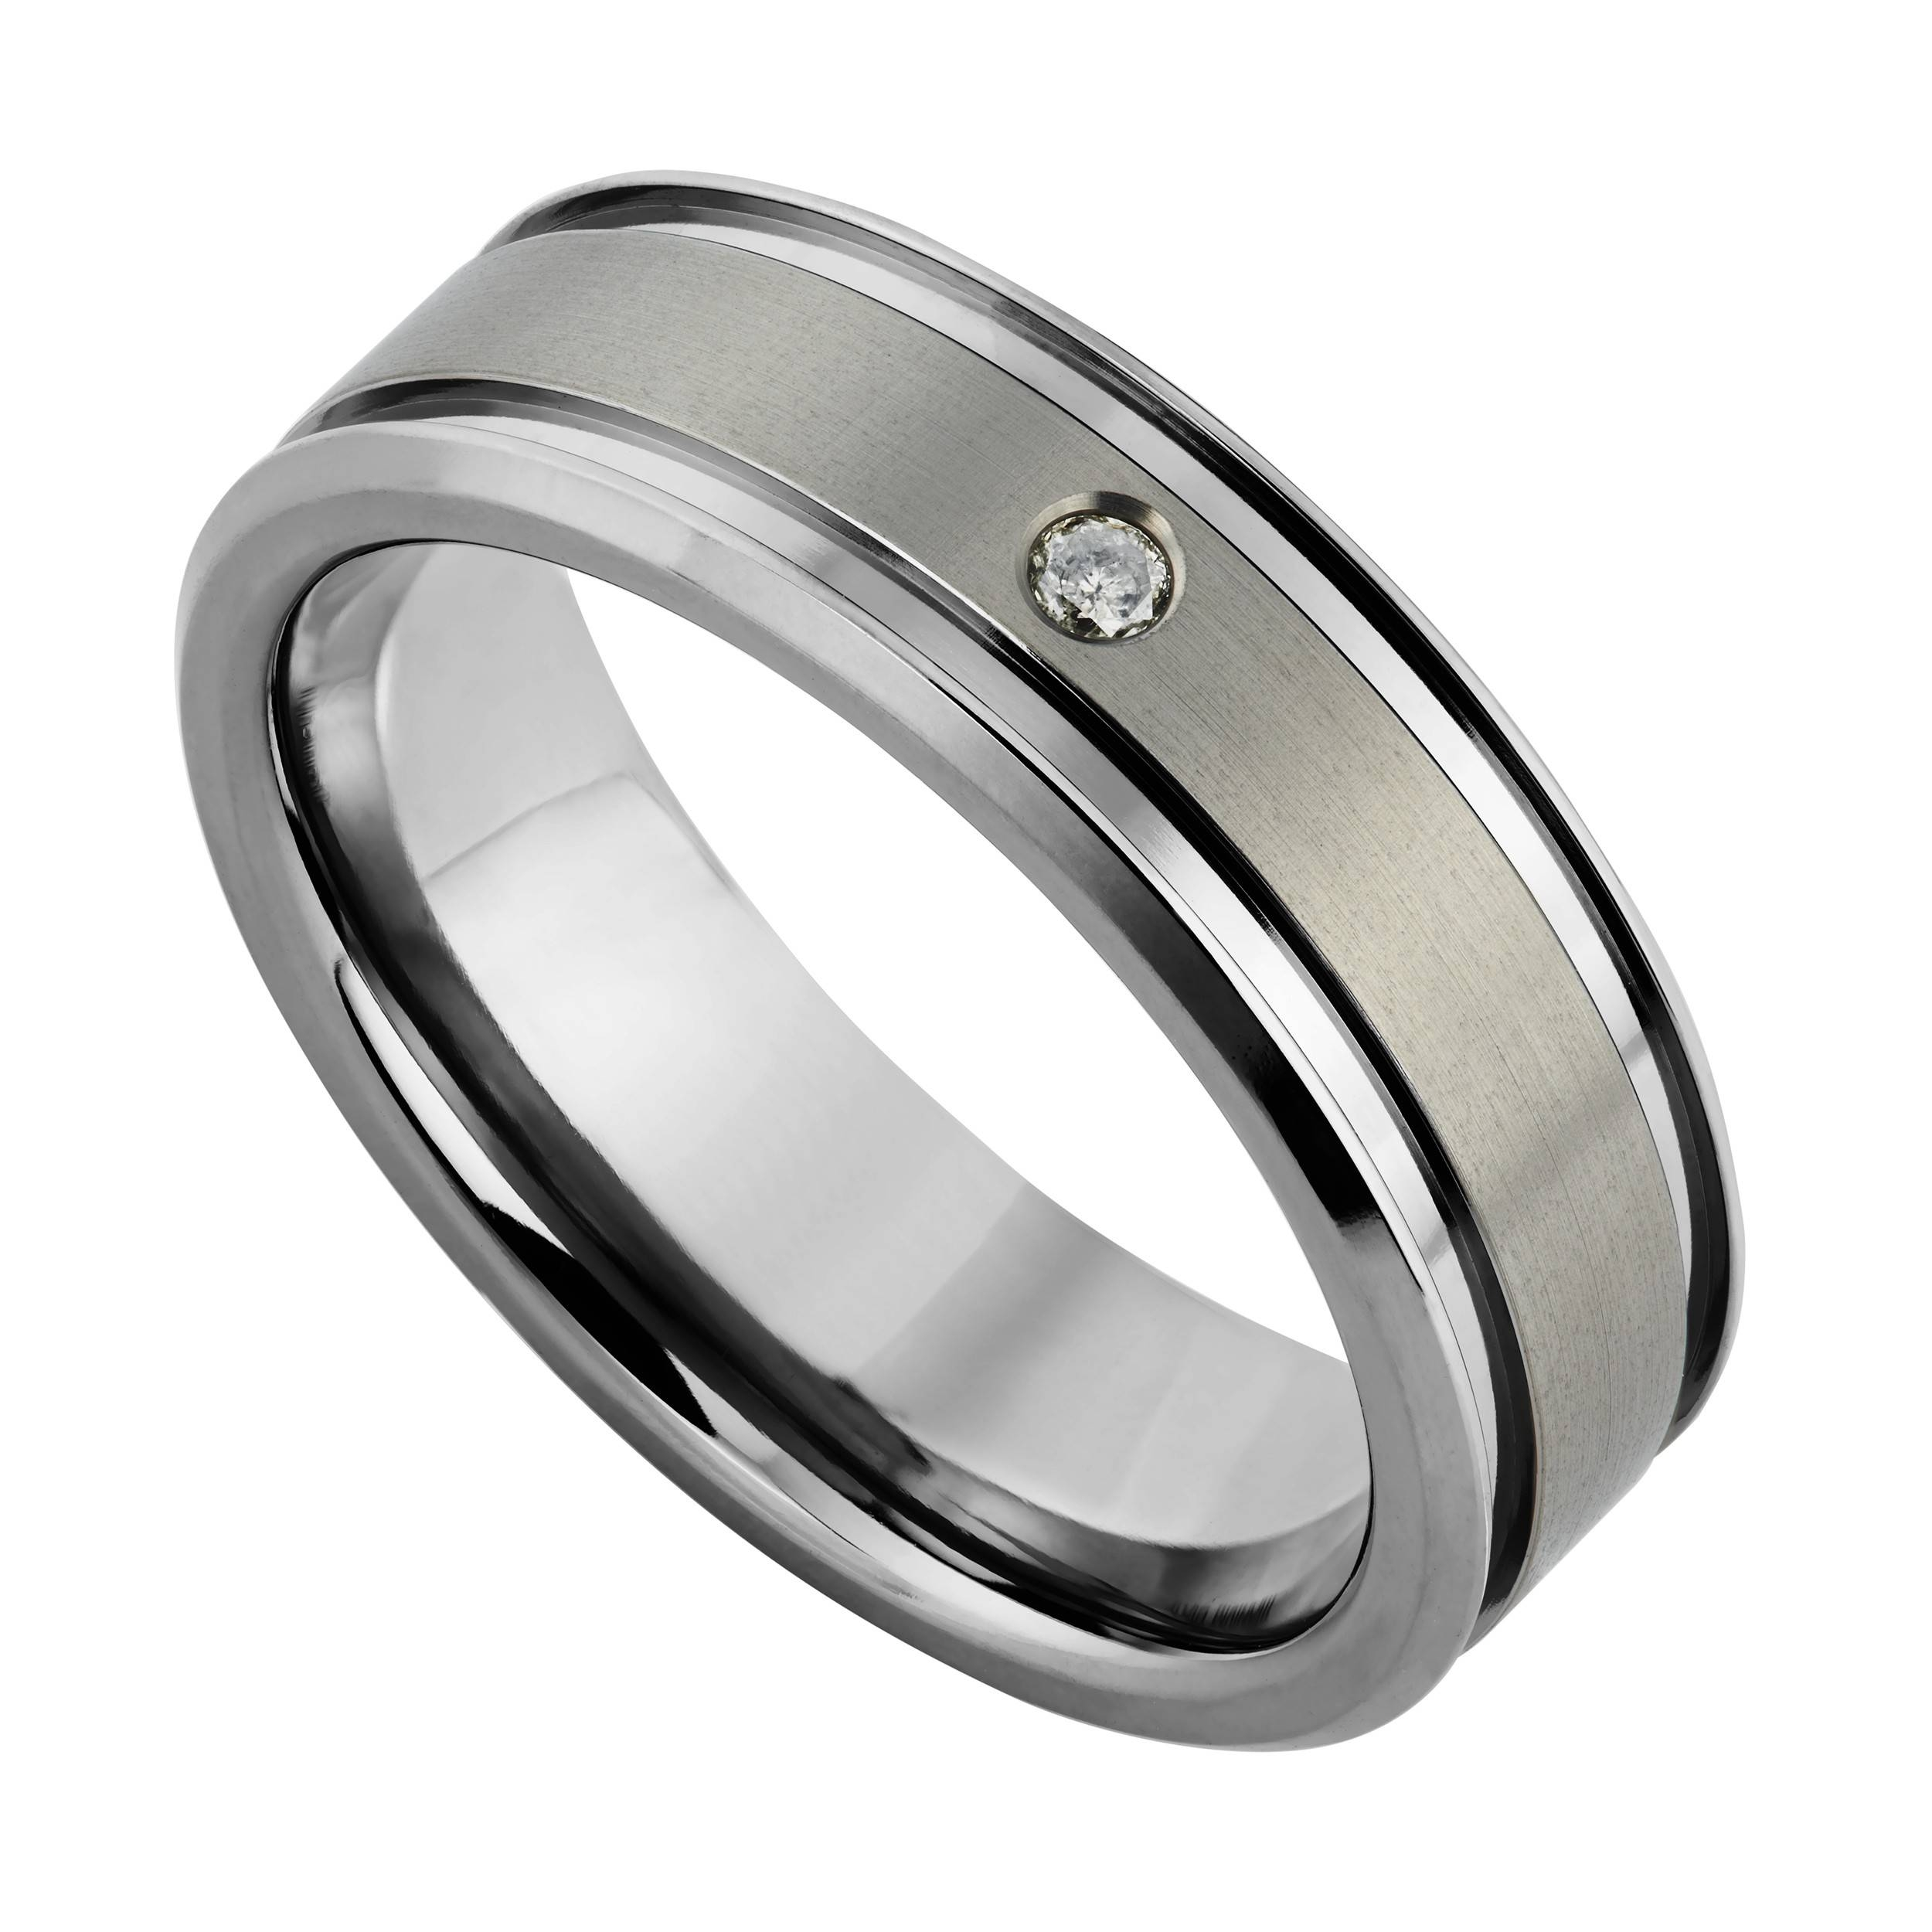 Men's Titanium 7Mm Diamond Set Ring Intended For Black Titanium Wedding Bands For Men (View 3 of 15)